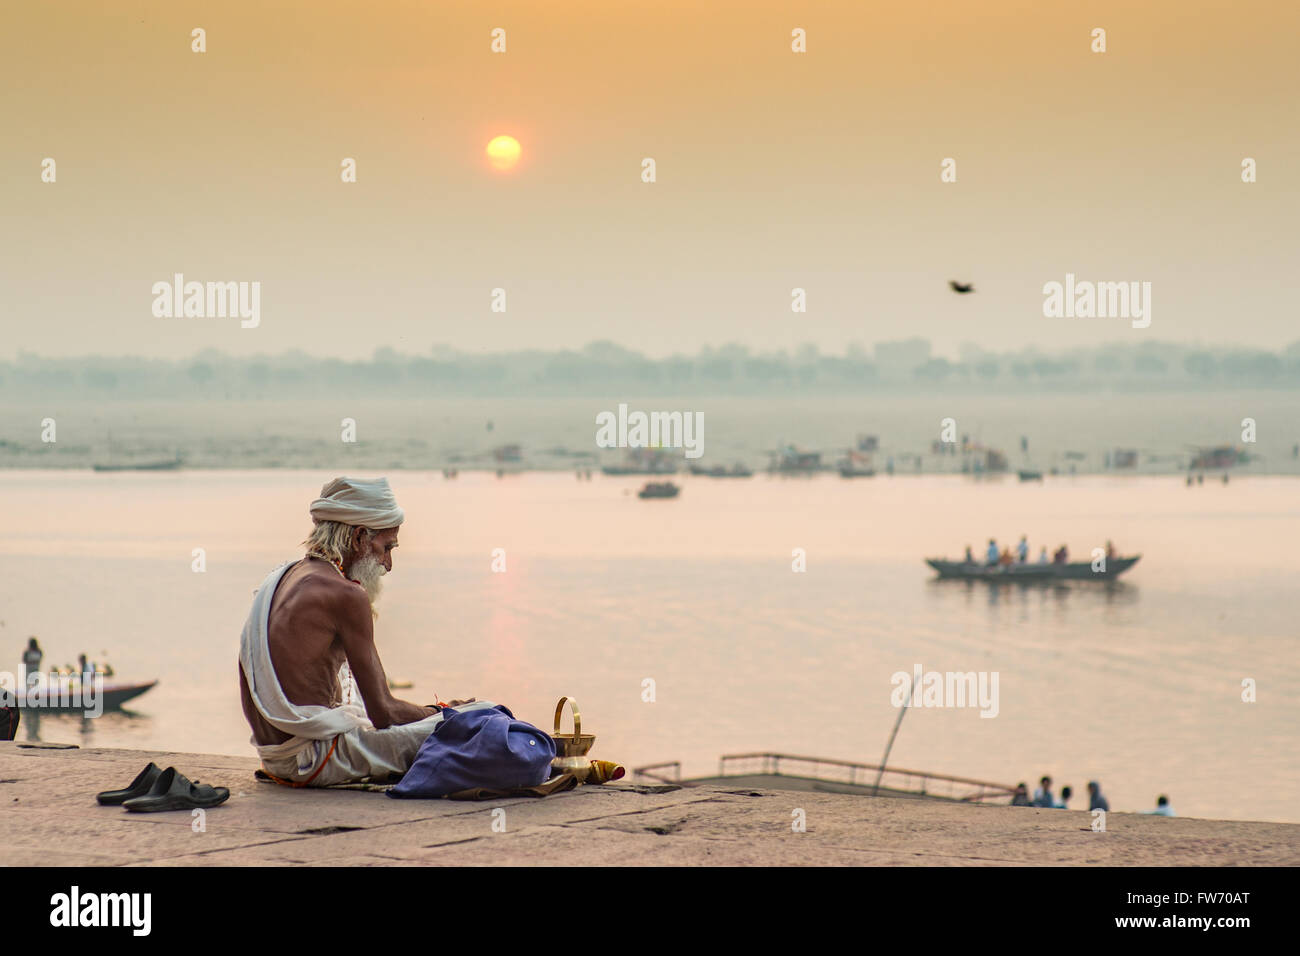 Un sadhu (religiosi indù devoto) è udienza dal Santo gange a varanasi come il sole sorge in background. Immagini Stock